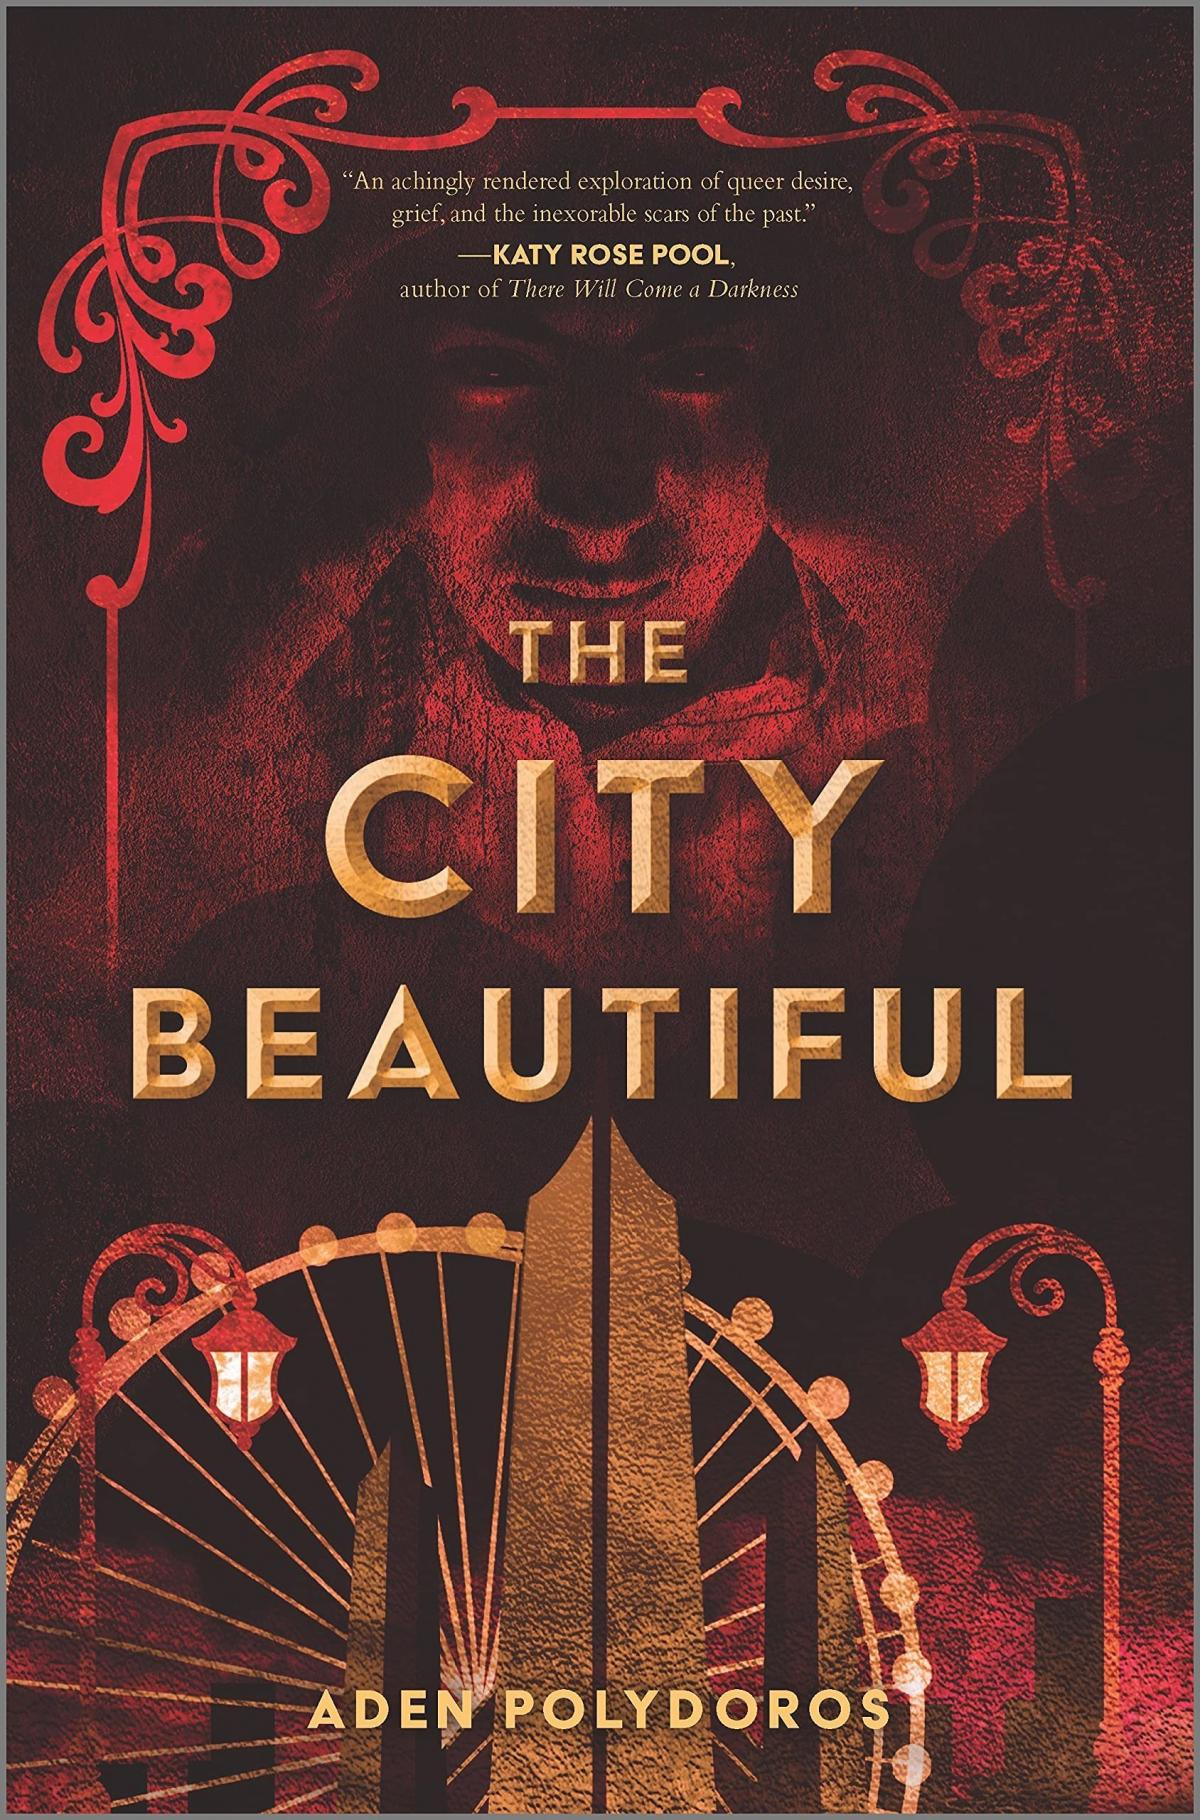 The City Beautiful, by Aden Polydoros